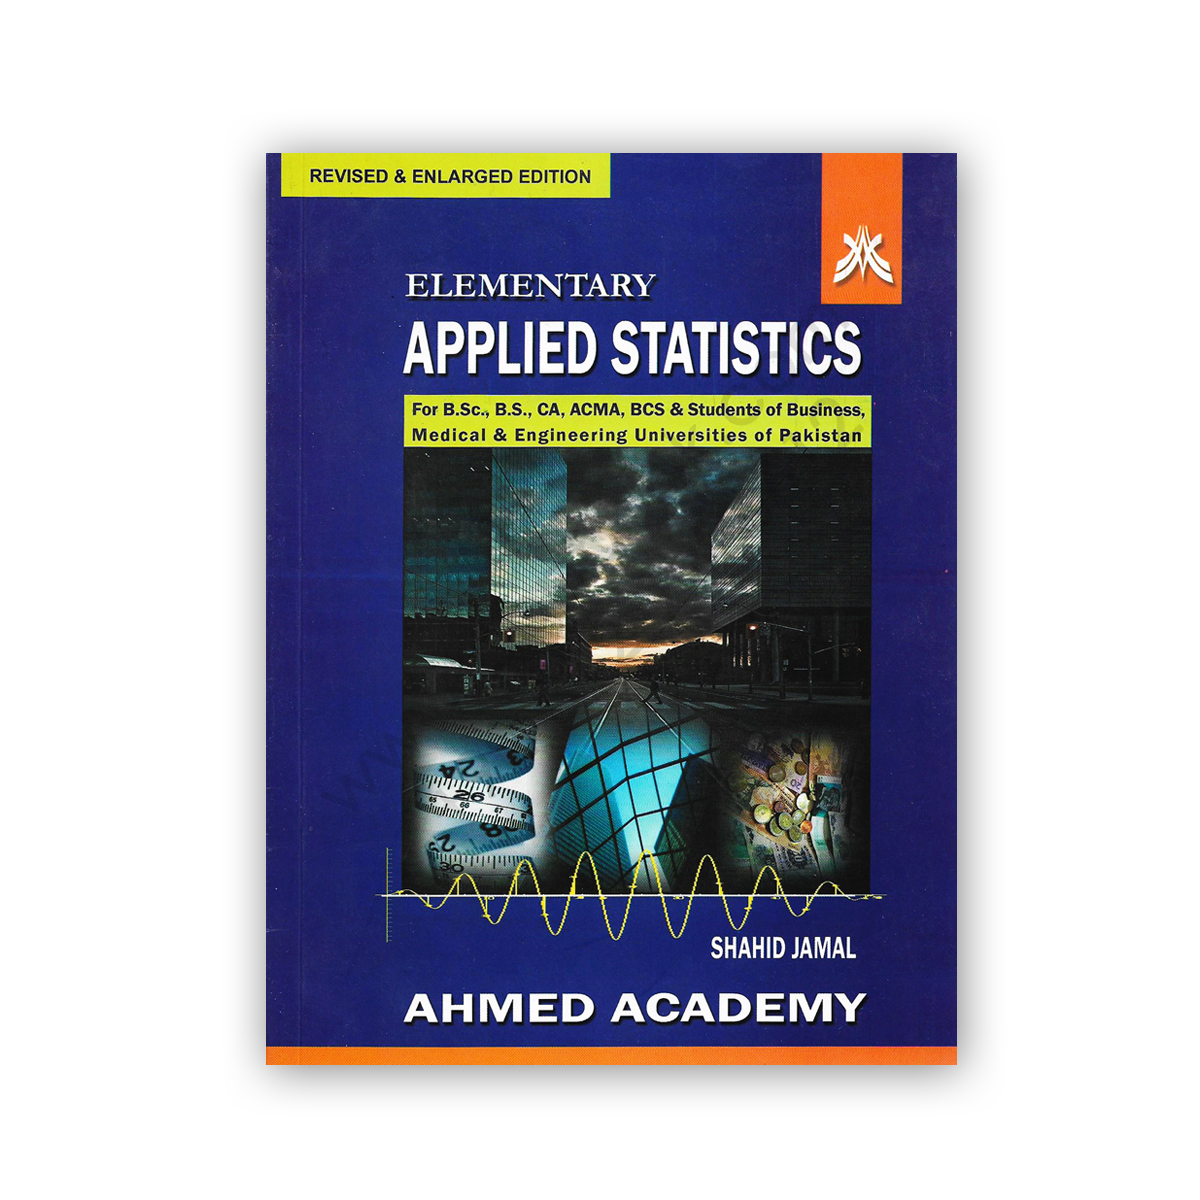 elementary applied statistics by shahid jamal - ahmed academy